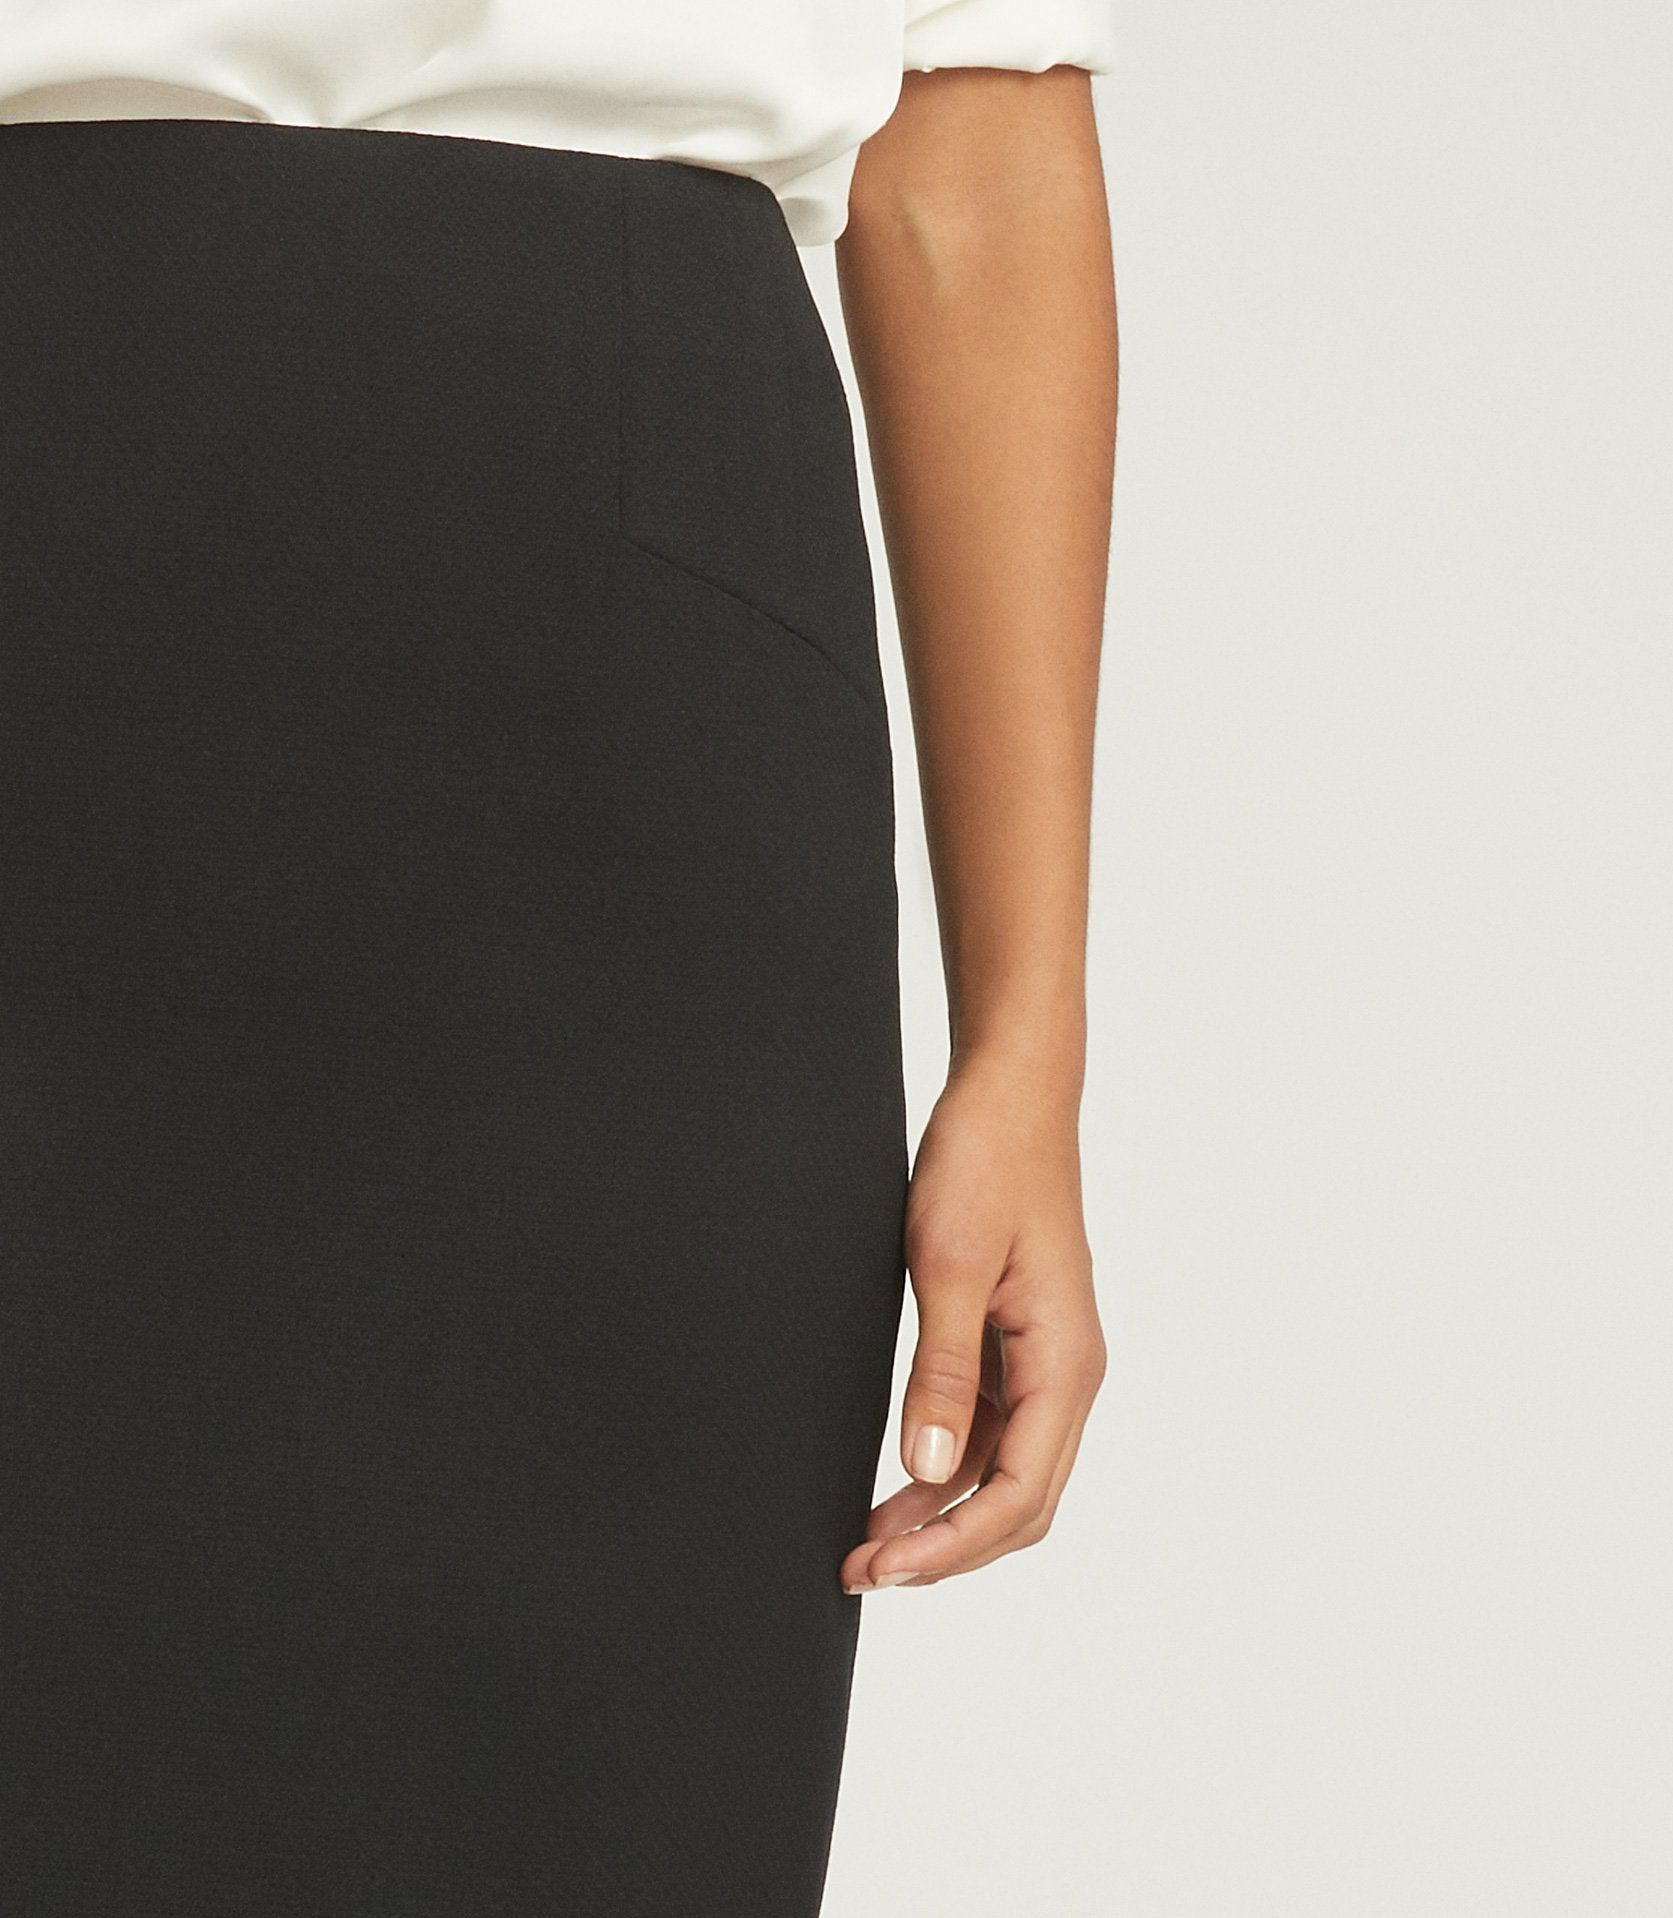 HAYES - TAILORED PENCIL SKIRT 4